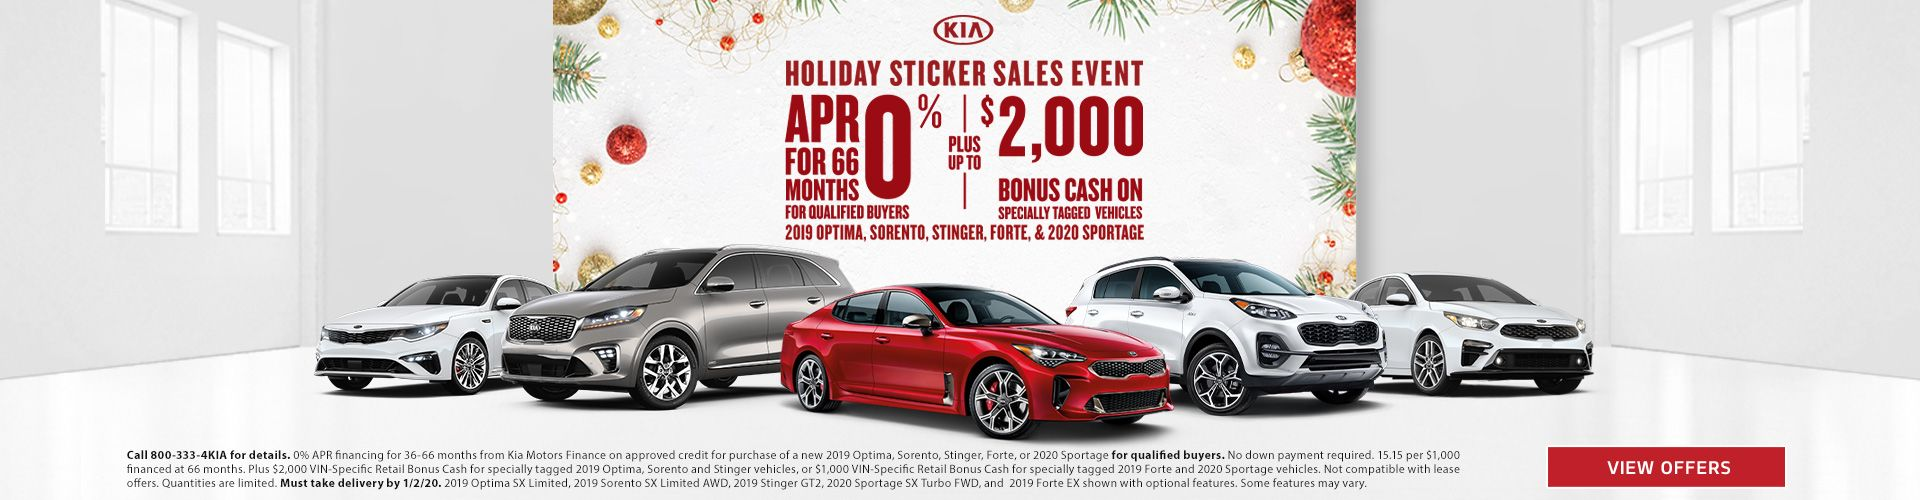 Christmas Events In Naples Fl 2020 Holiday Sticker Sales Event at Airport Kia in Naples FL